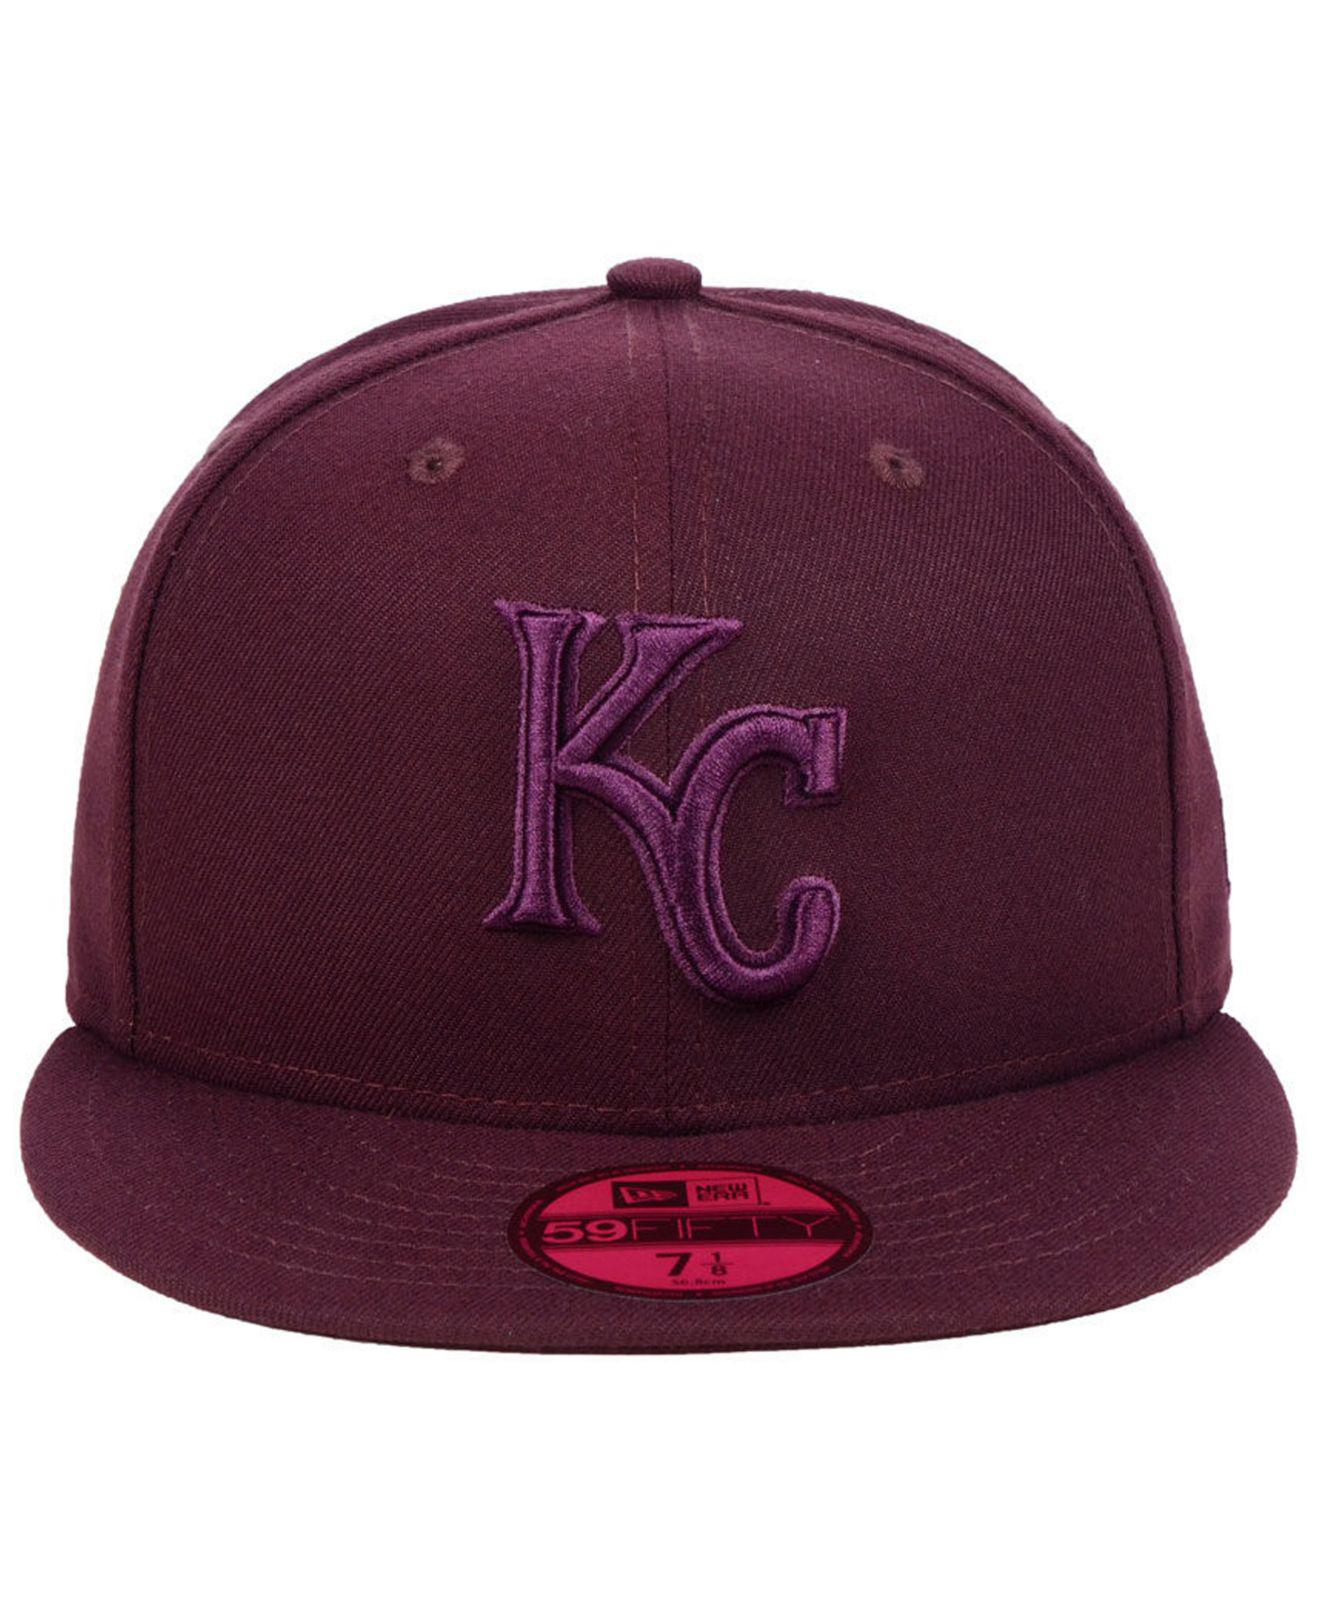 Lyst - Ktz Kansas City Royals Fall Prism Pack 59fifty-fitted Cap in Purple  for Men 4f33cf6e92fe